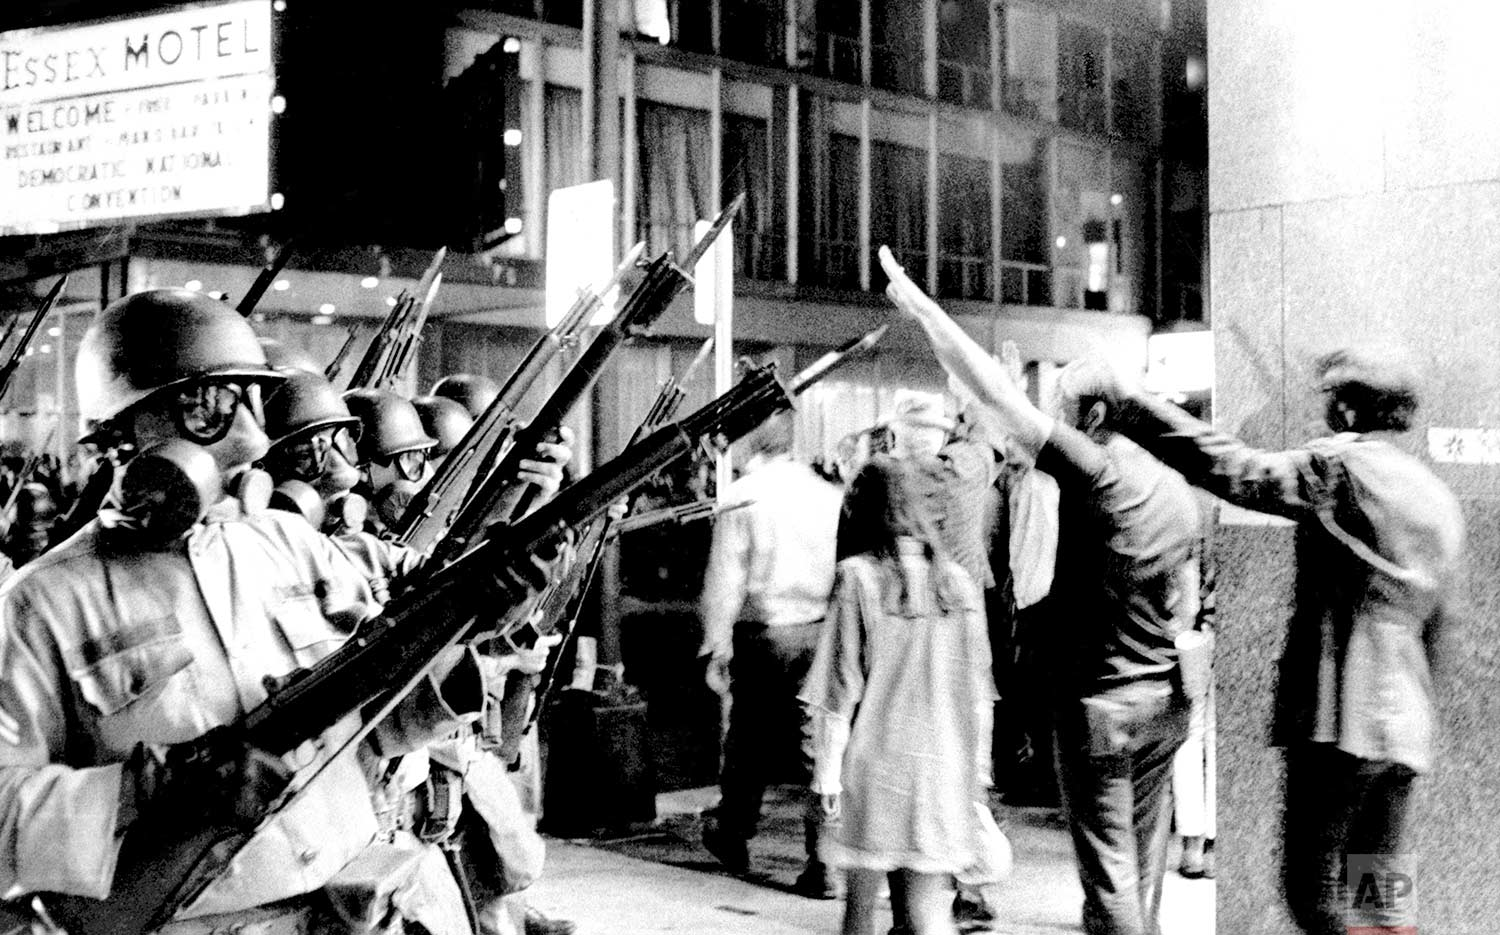 A group of hippies raise their arms in the air and taunt bayonet-armed National Guardsmen near Michigan Avenue in Chicago on August 28, 1968. Police and National Guardsmen battled the demonstrators during the evening. (AP Photo)